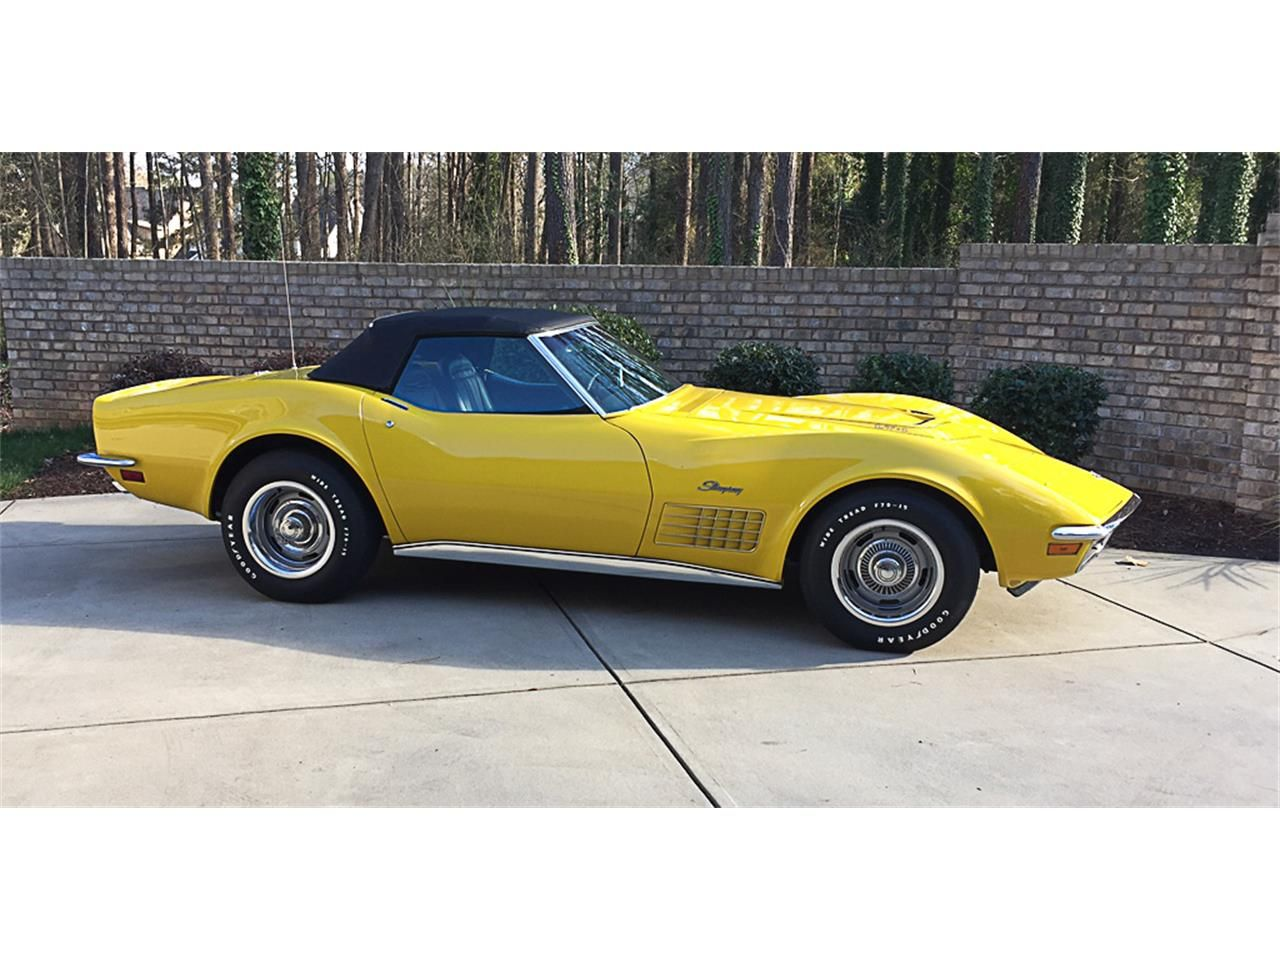 1971 Chevrolet Corvette Cc 964153 For Sale In Lake Wylie South